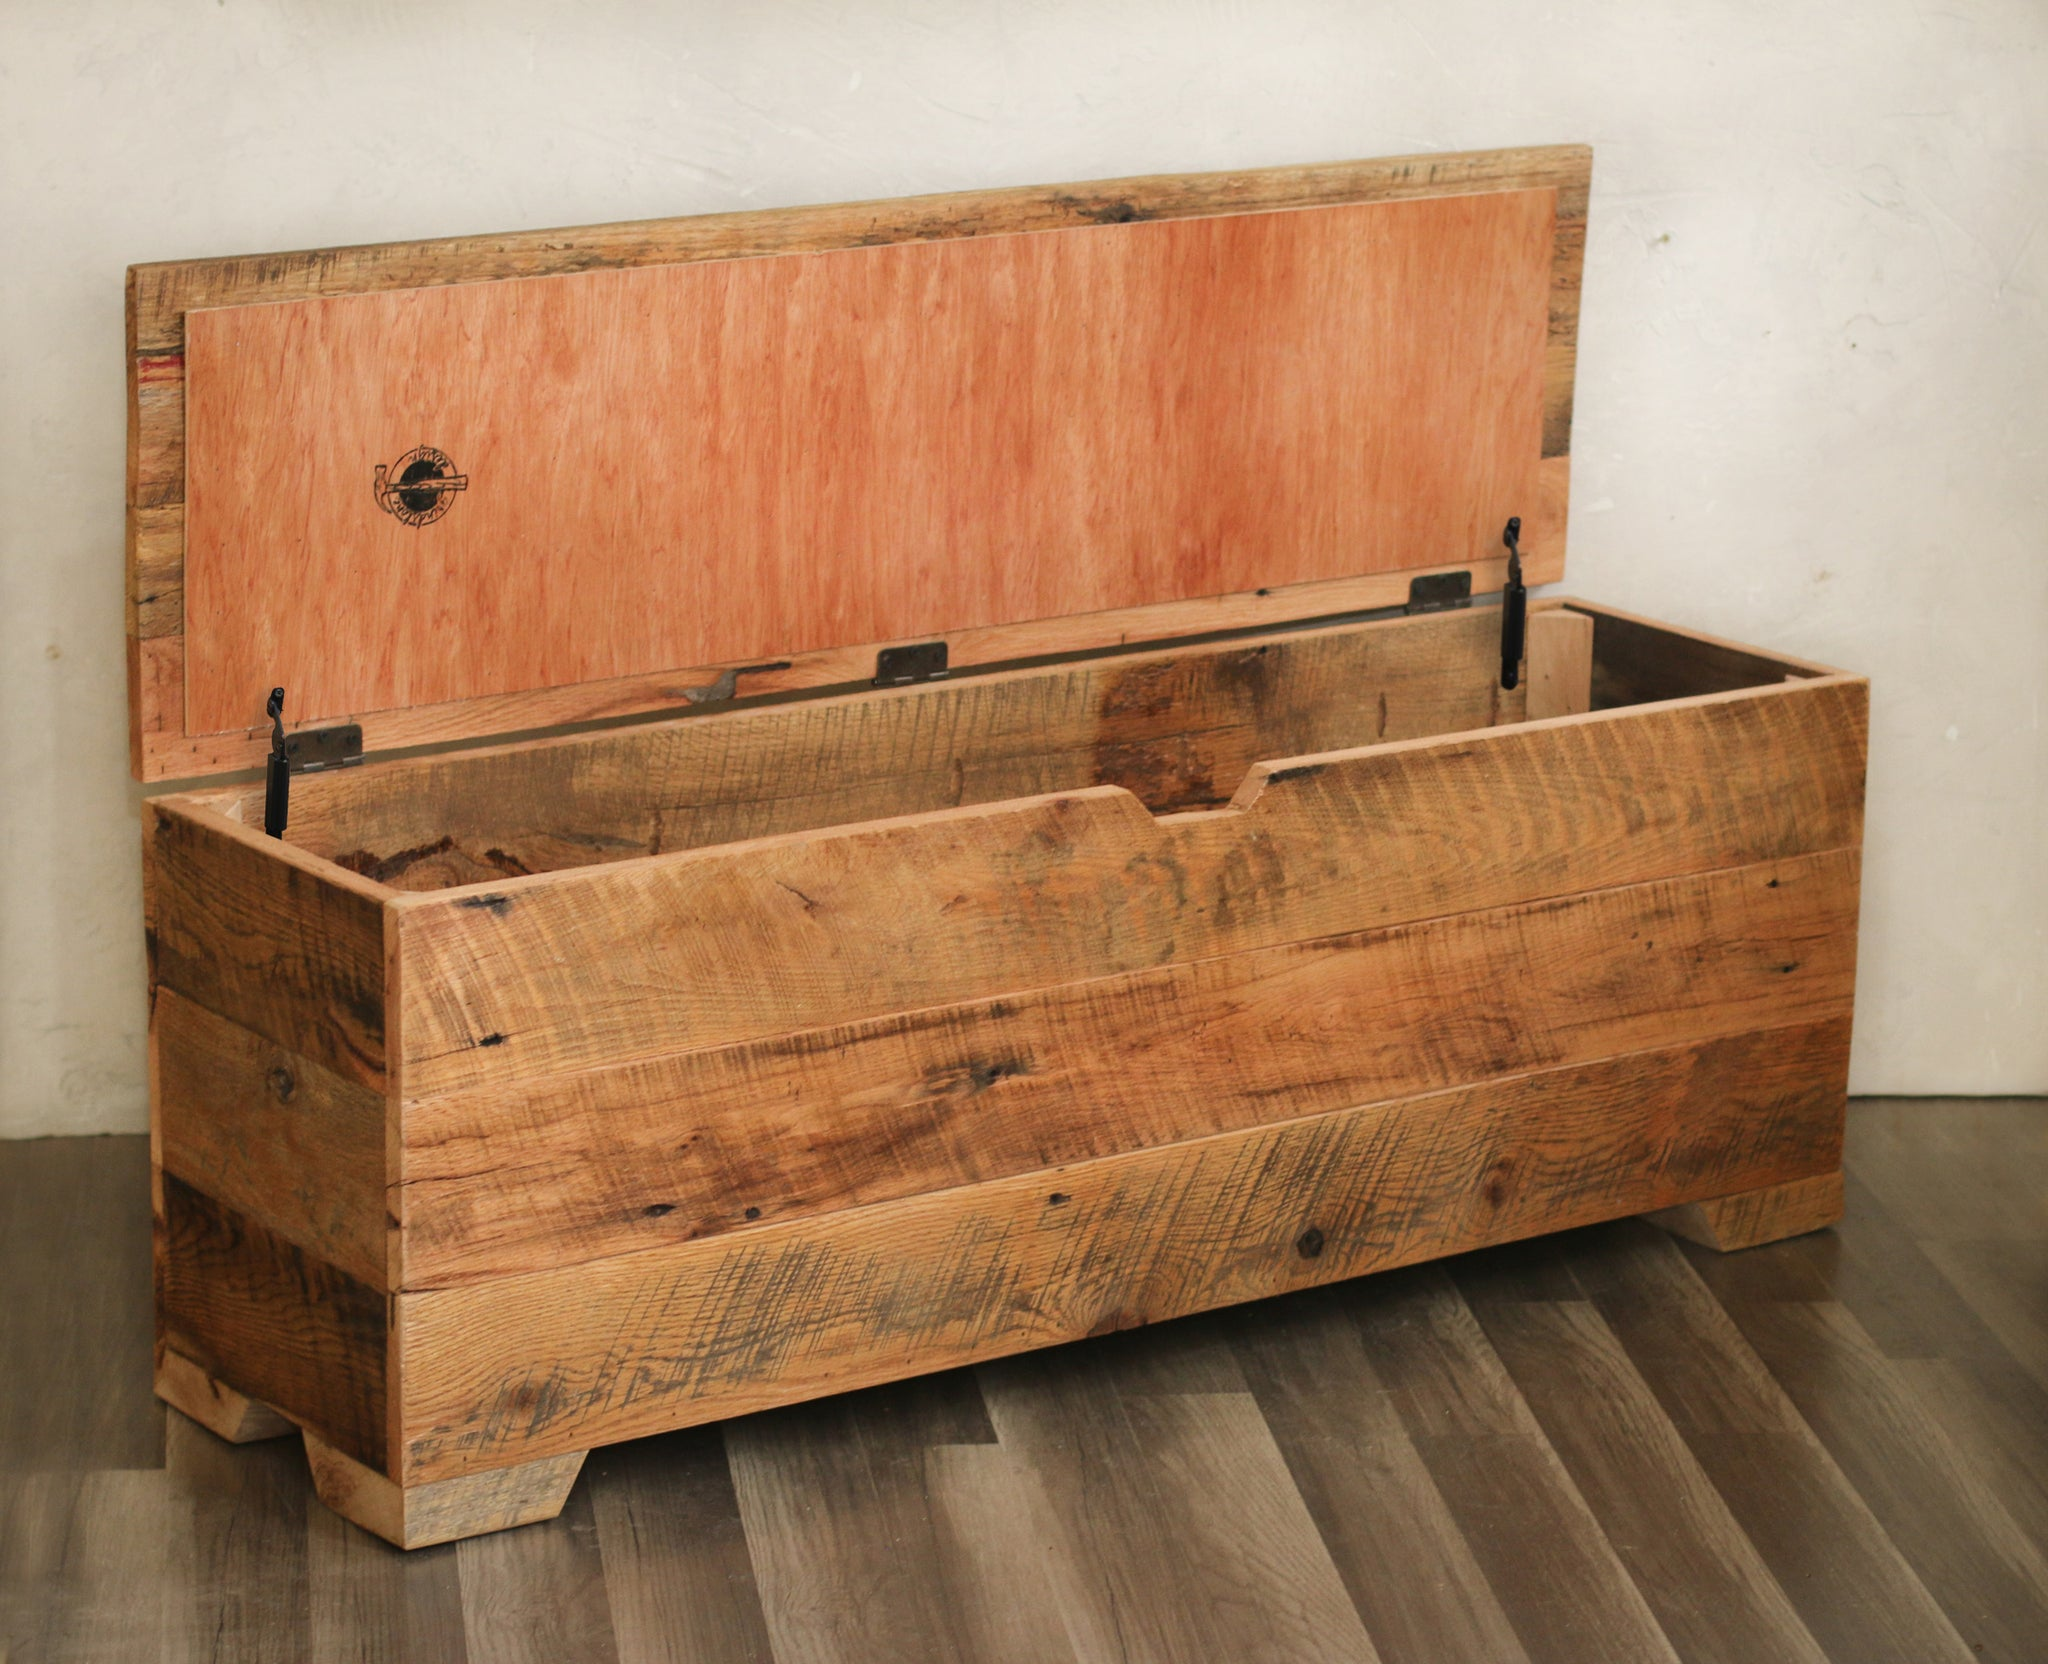 Miraculous Storage Bench Made From Reclaimed Barn Wood Grindstone Design Gmtry Best Dining Table And Chair Ideas Images Gmtryco